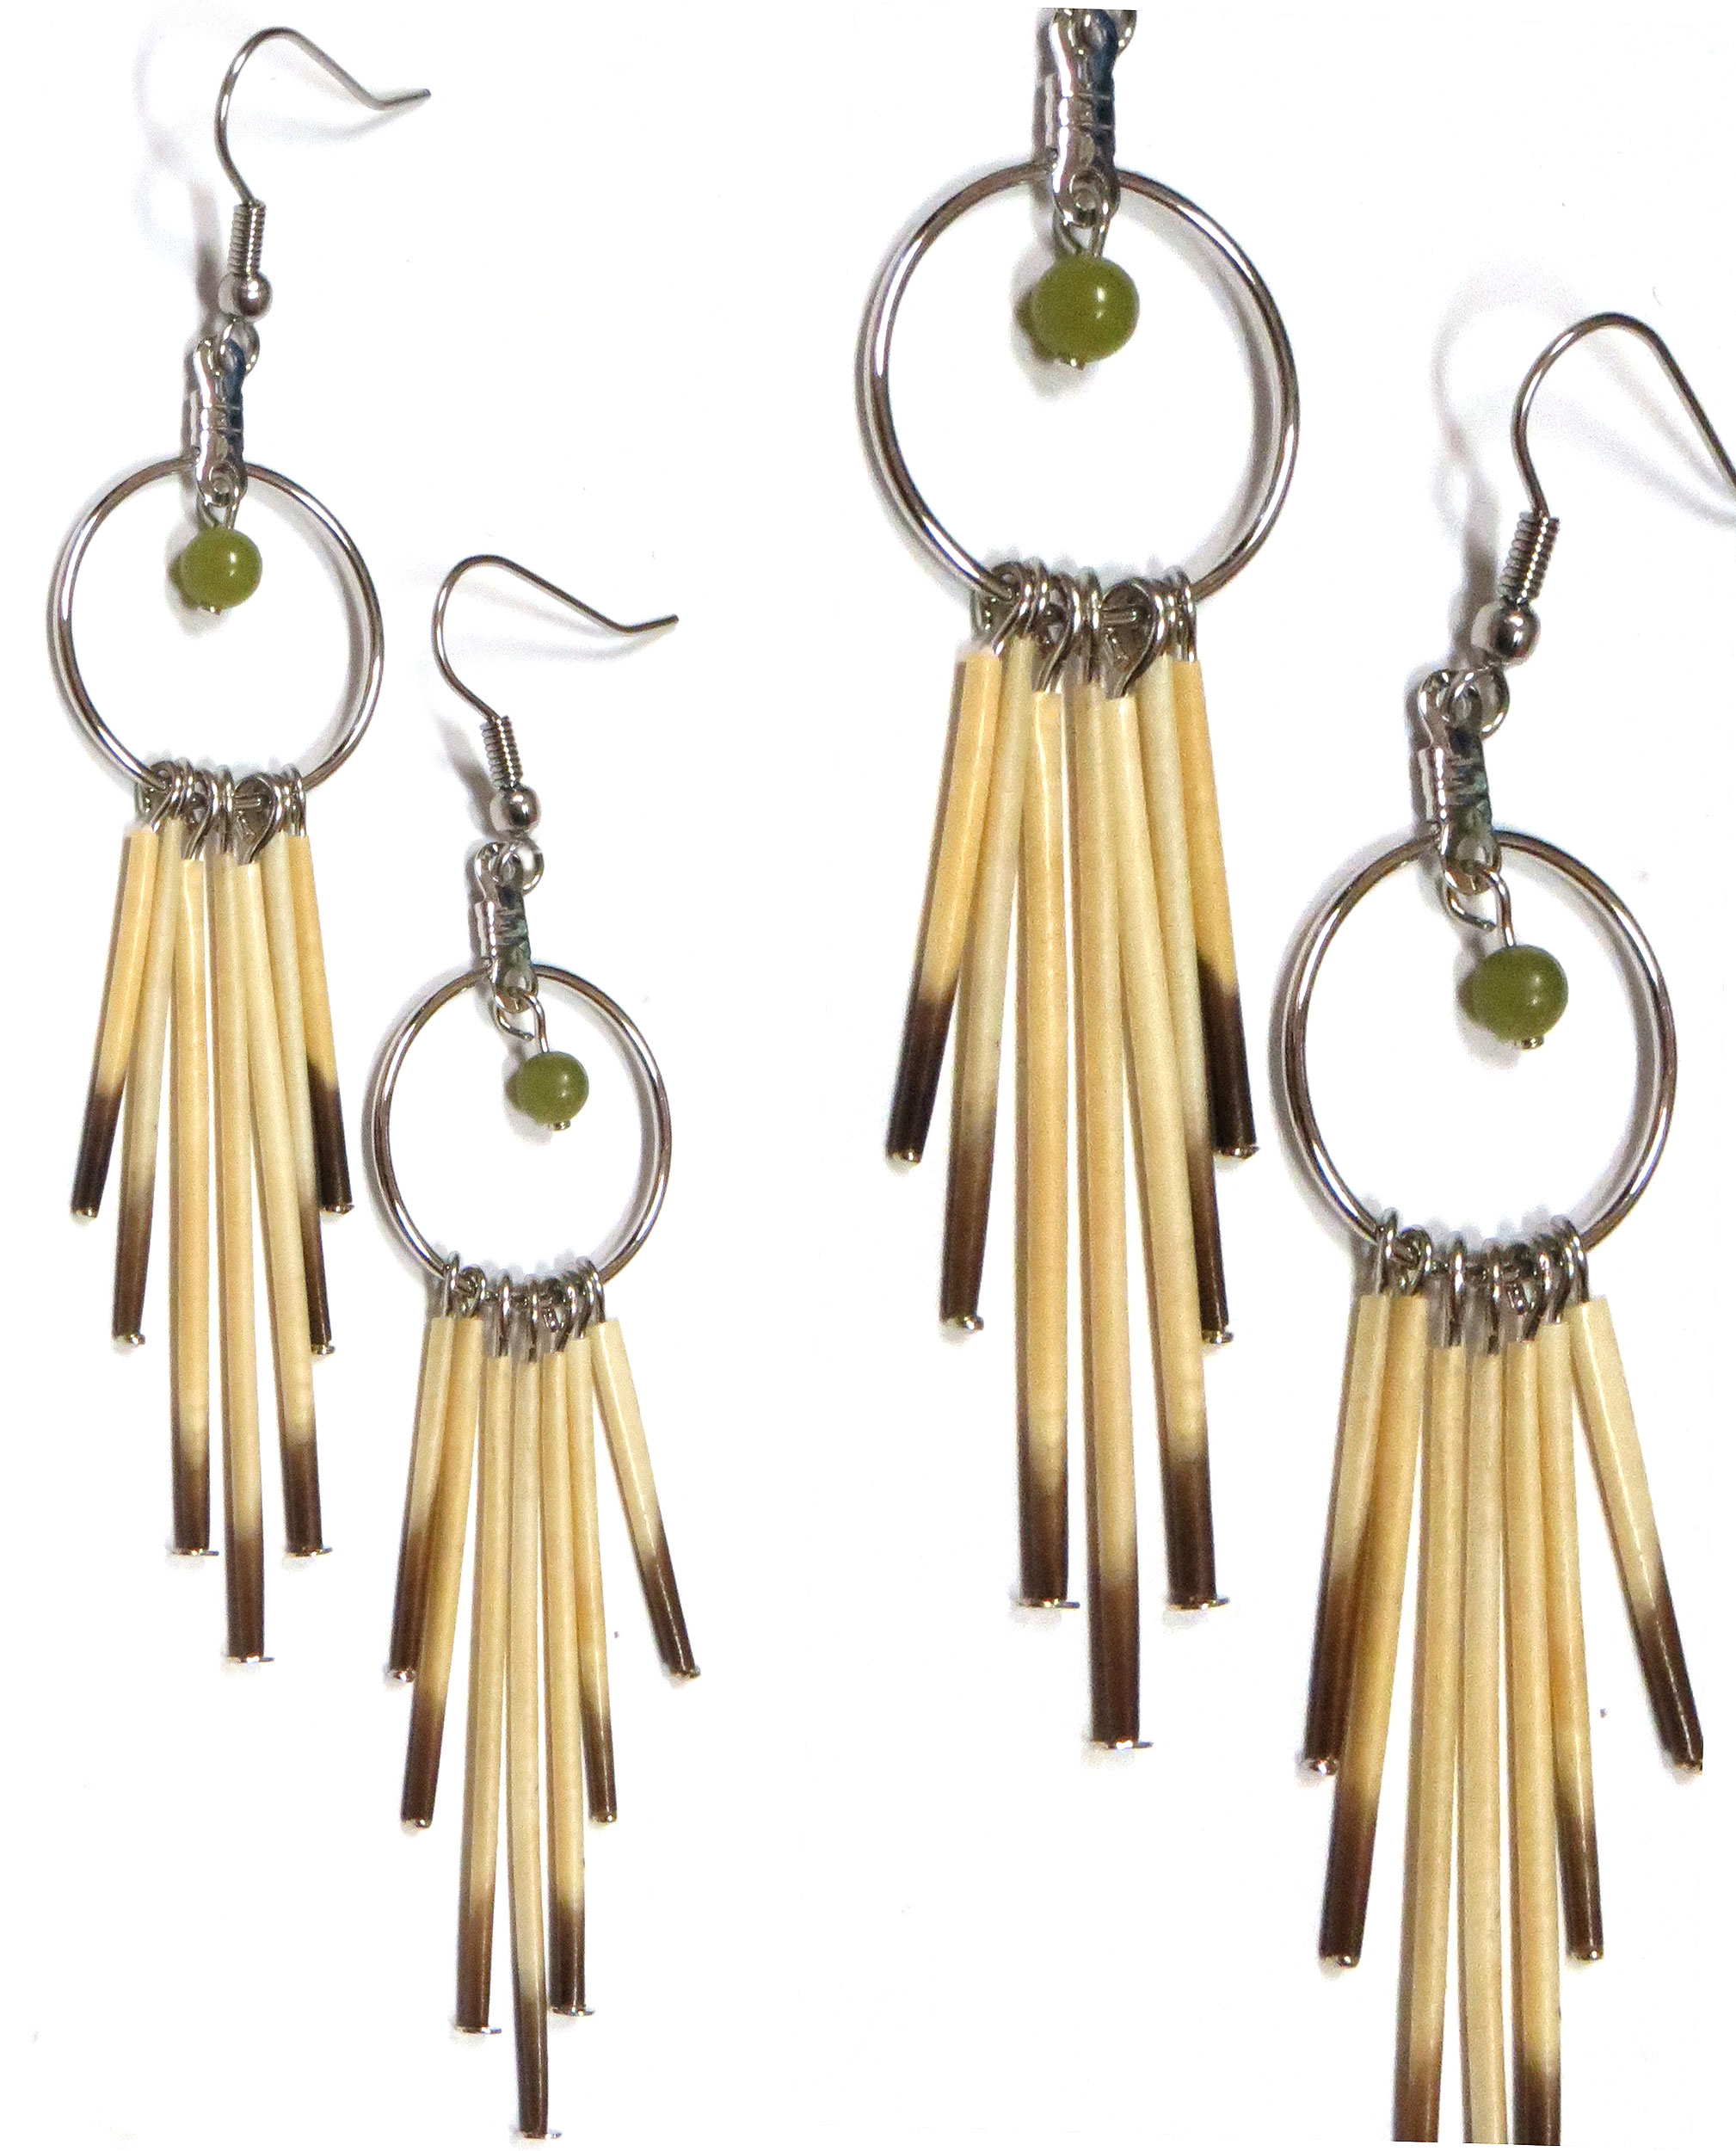 Procupine quill earrings with sterli